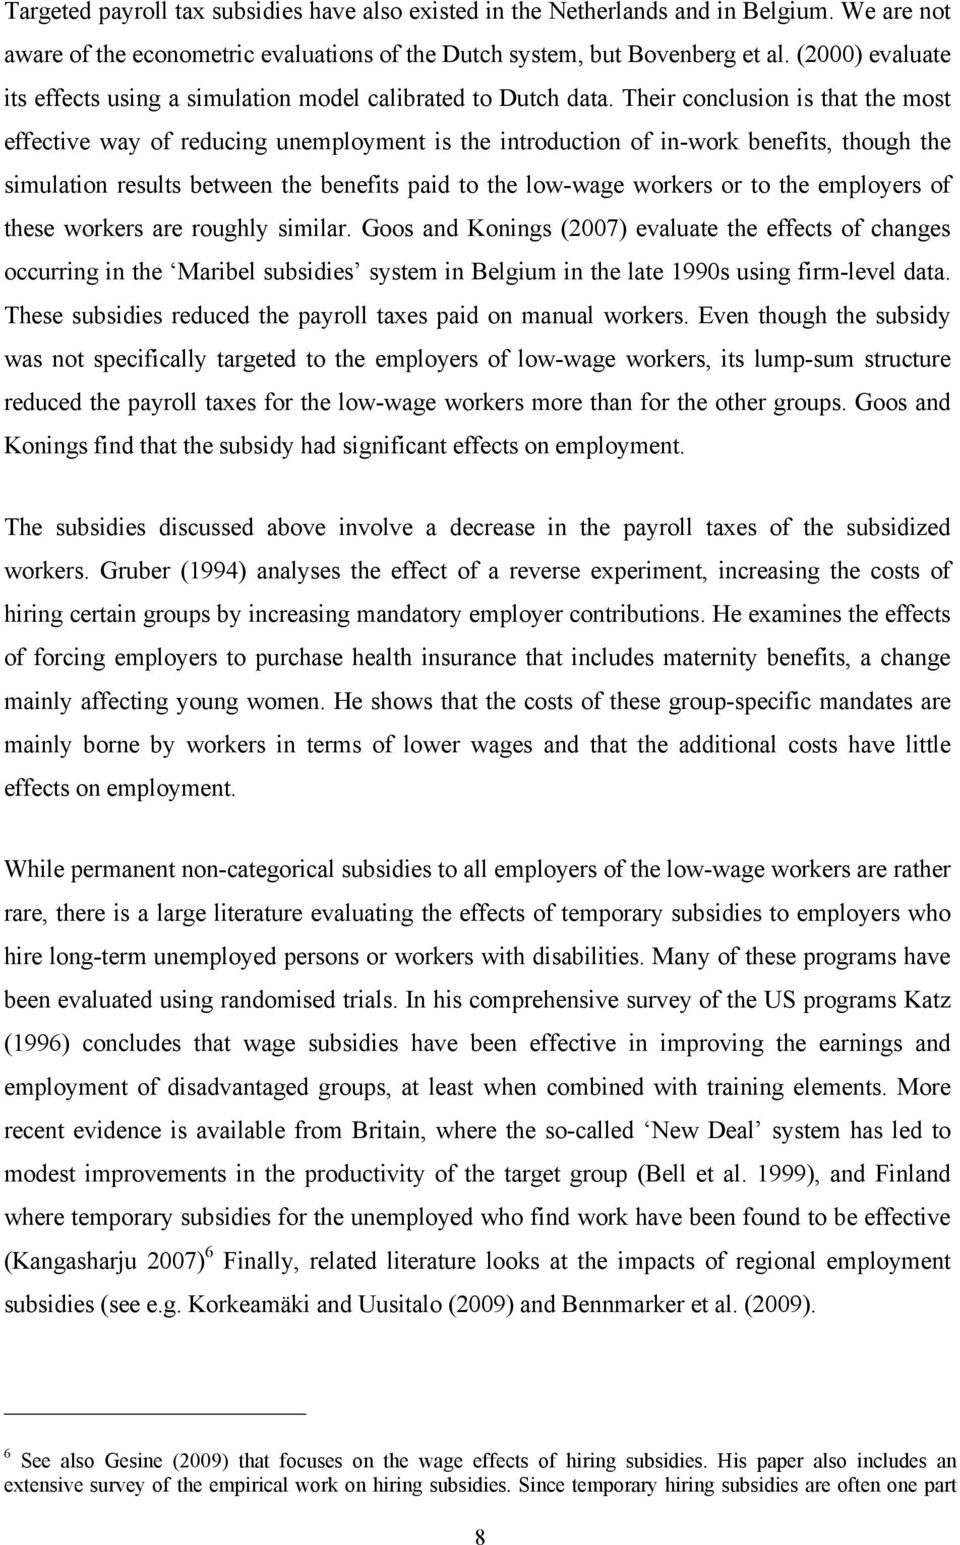 Their conclusion is that the most effective way of reducing unemployment is the introduction of in-work benefits, though the simulation results between the benefits paid to the low-wage workers or to